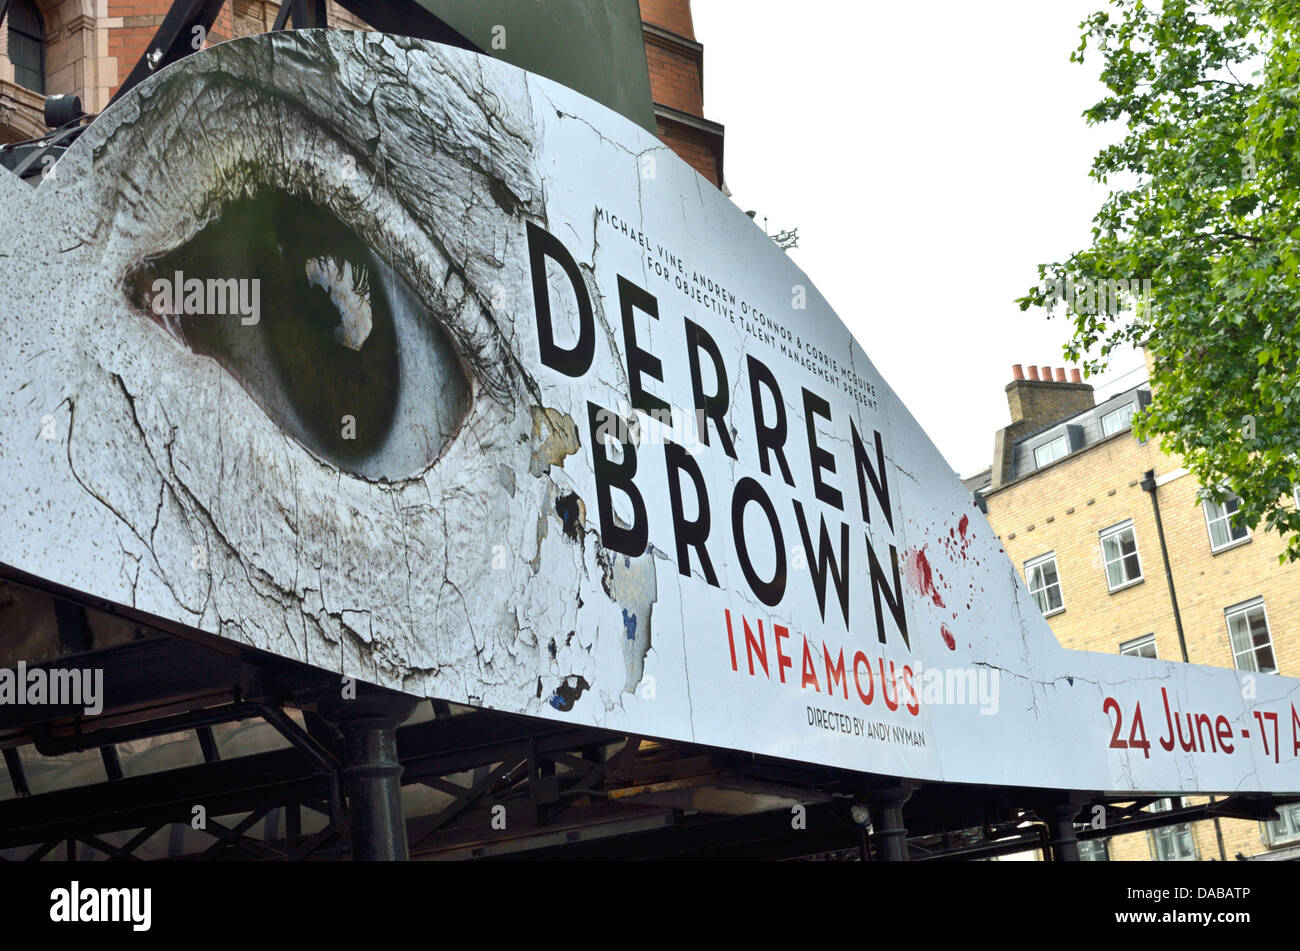 Giant billboard advertising the Derren Brown stage show 'Infamous', Palace Theatre, London, UK - Stock Image